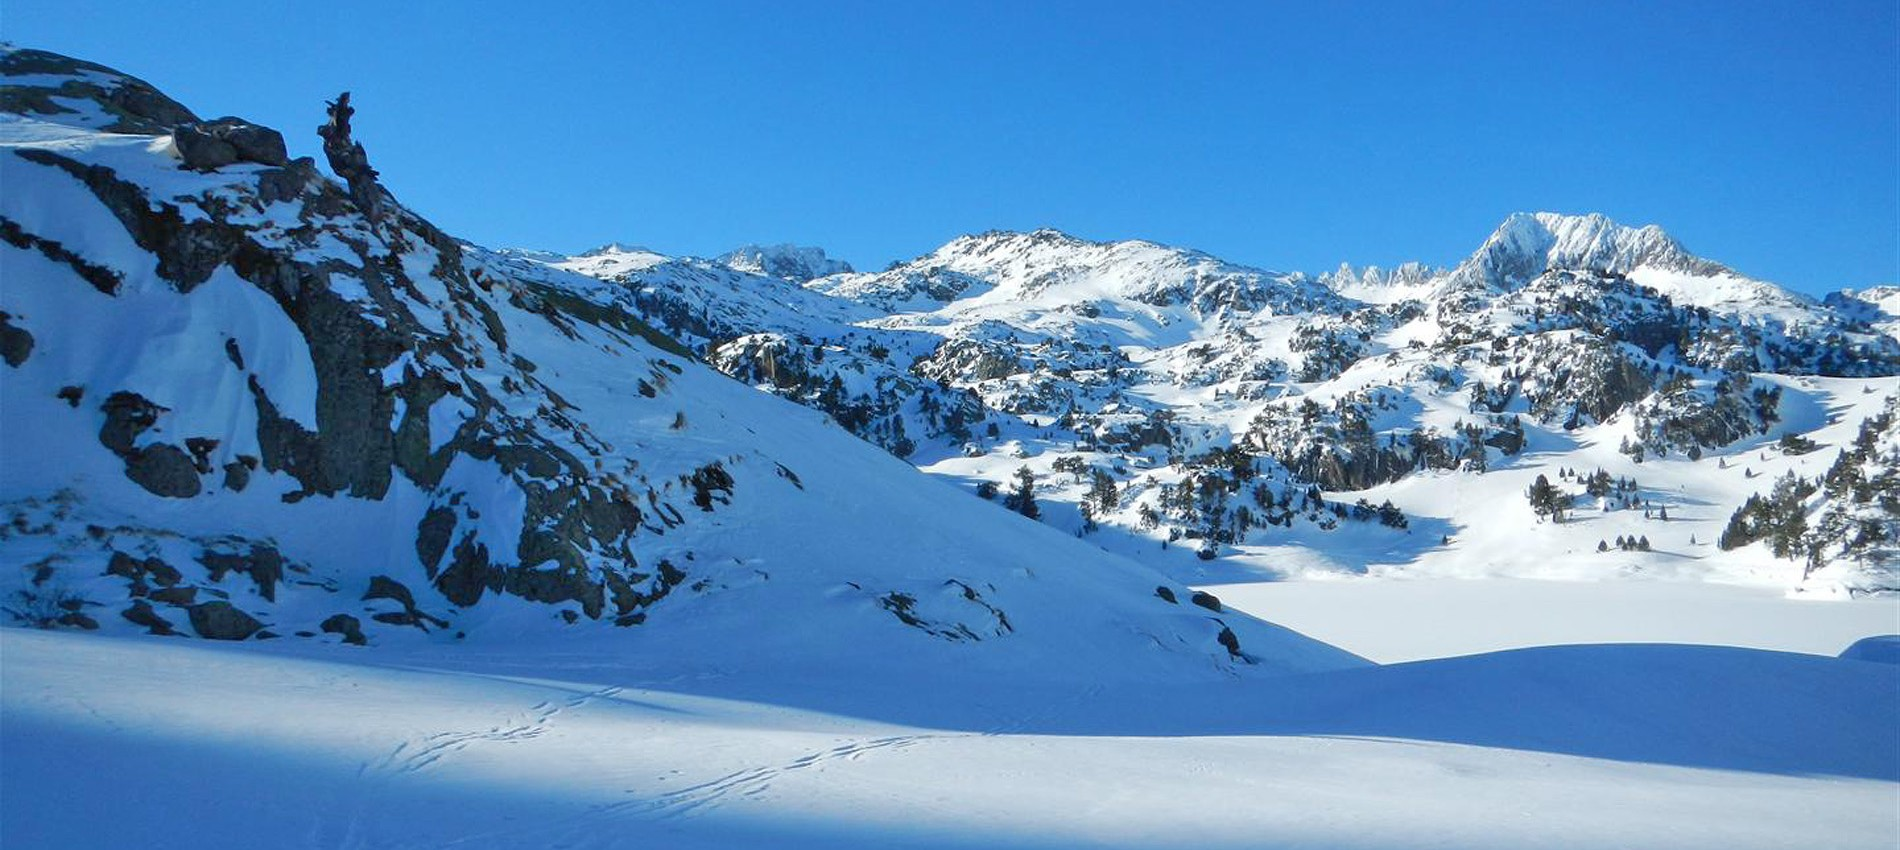 grand lac cirque colomers hiver neige